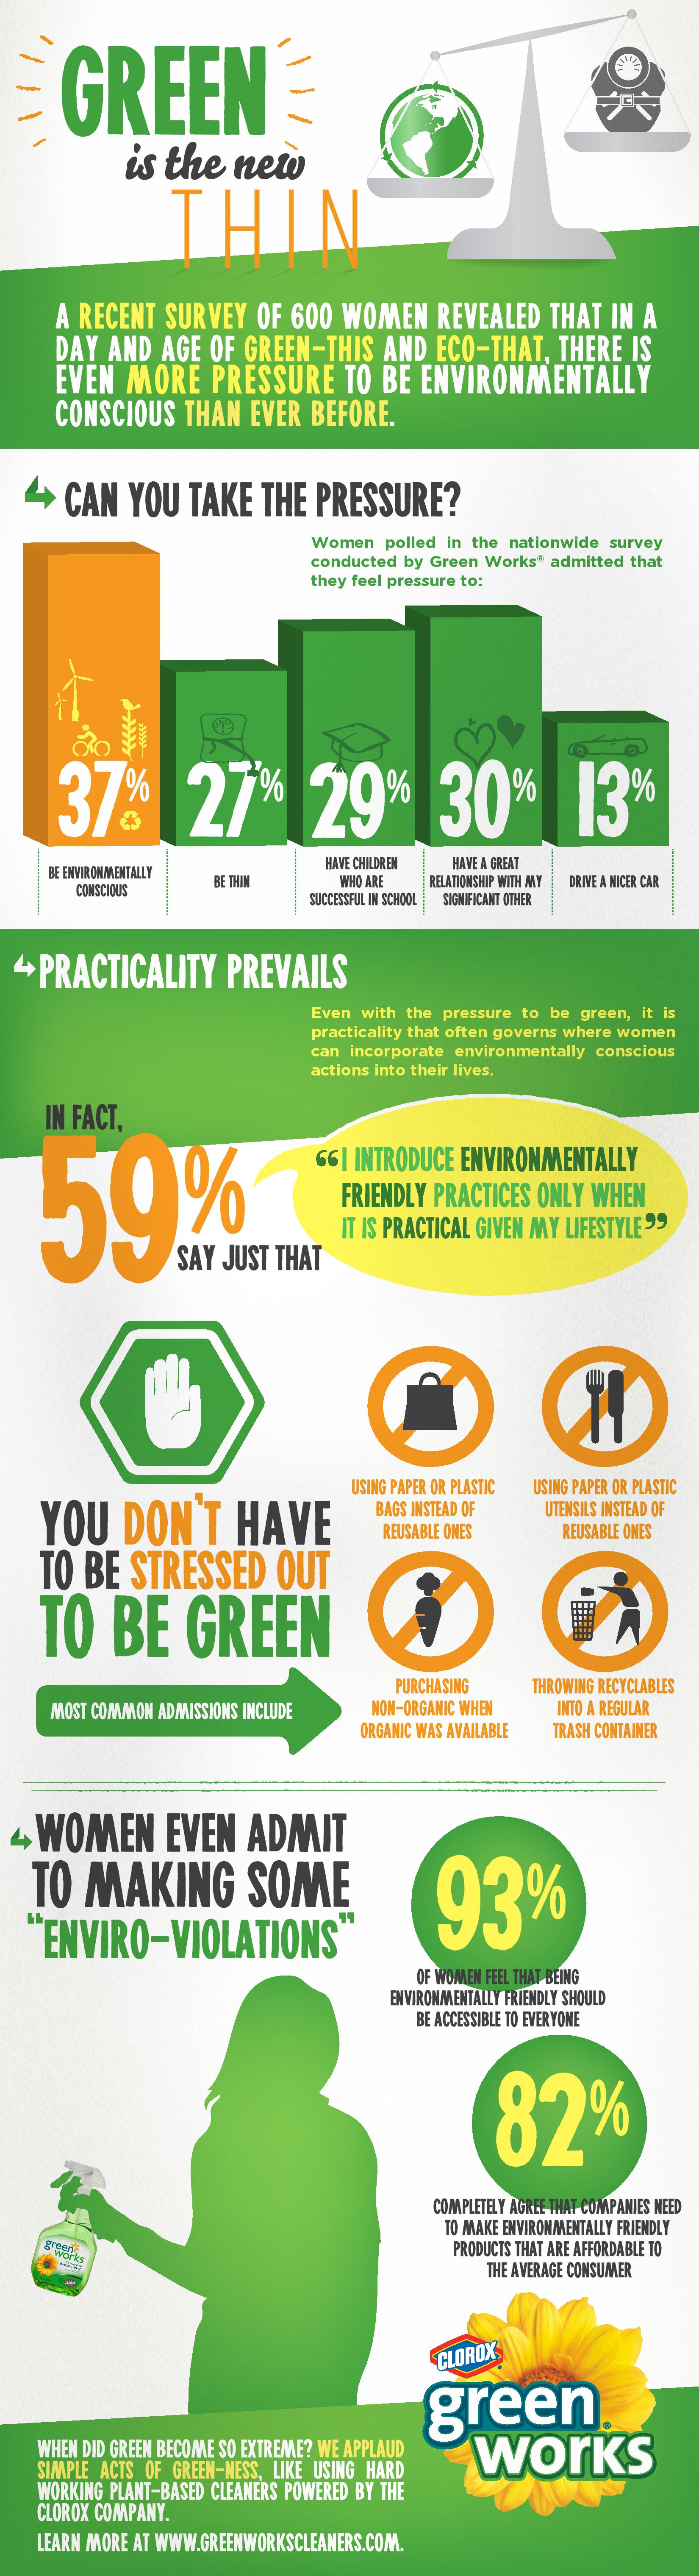 Greenworks Infographic